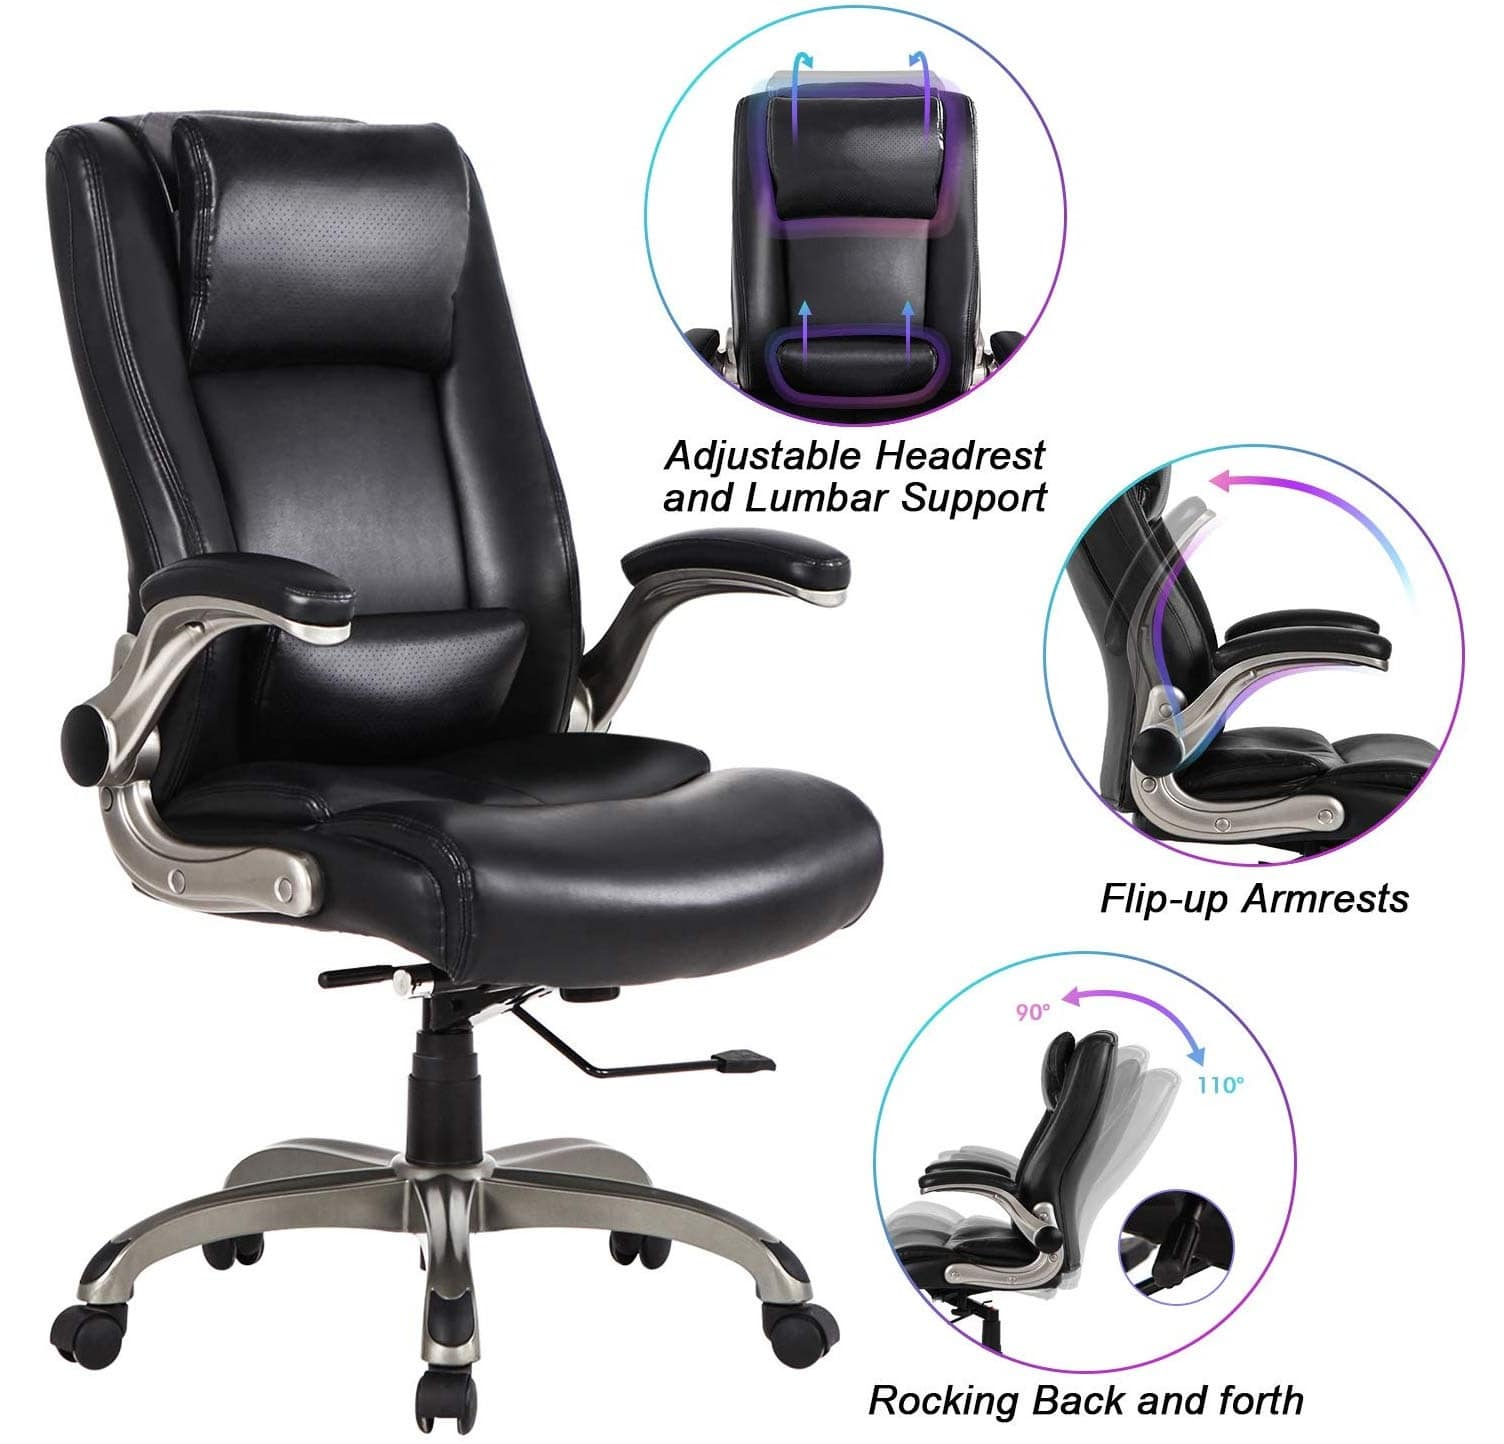 10.Office Chair High Back Leather Executive Computer Desk Chair - Adjustable Lumbar Support